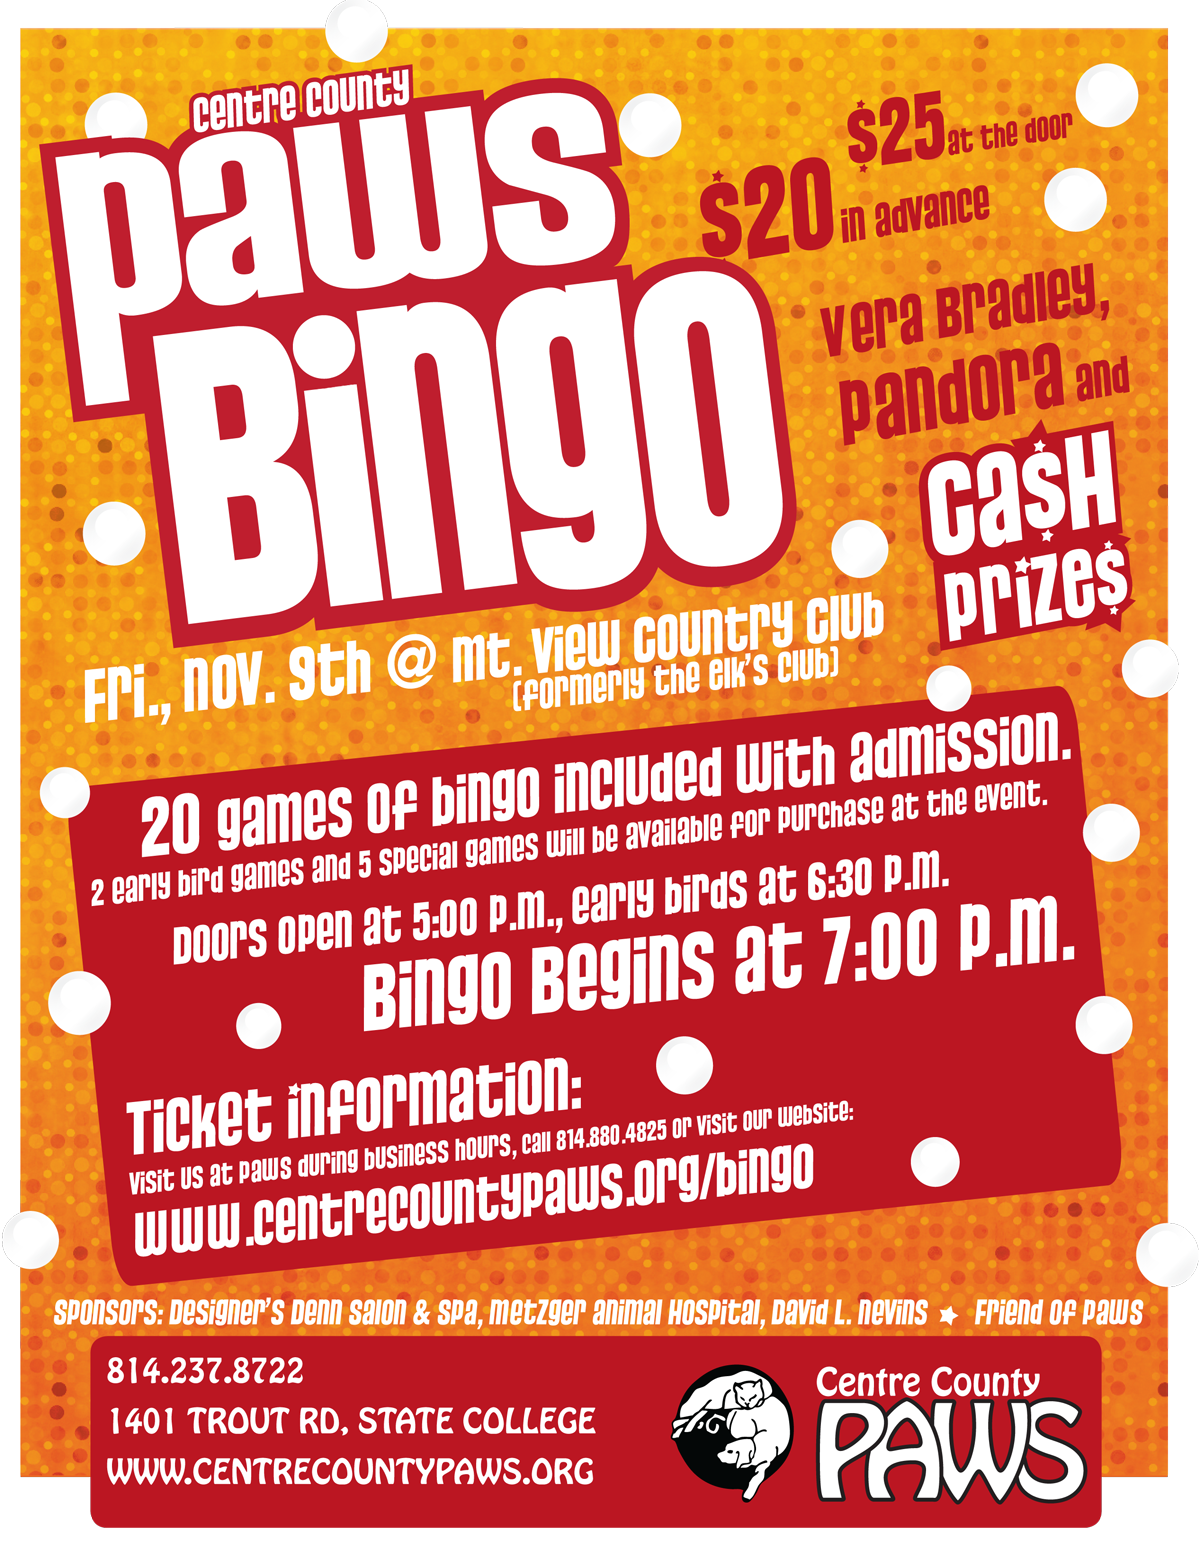 Join us for a night of Bingo to support Centre County PAWS